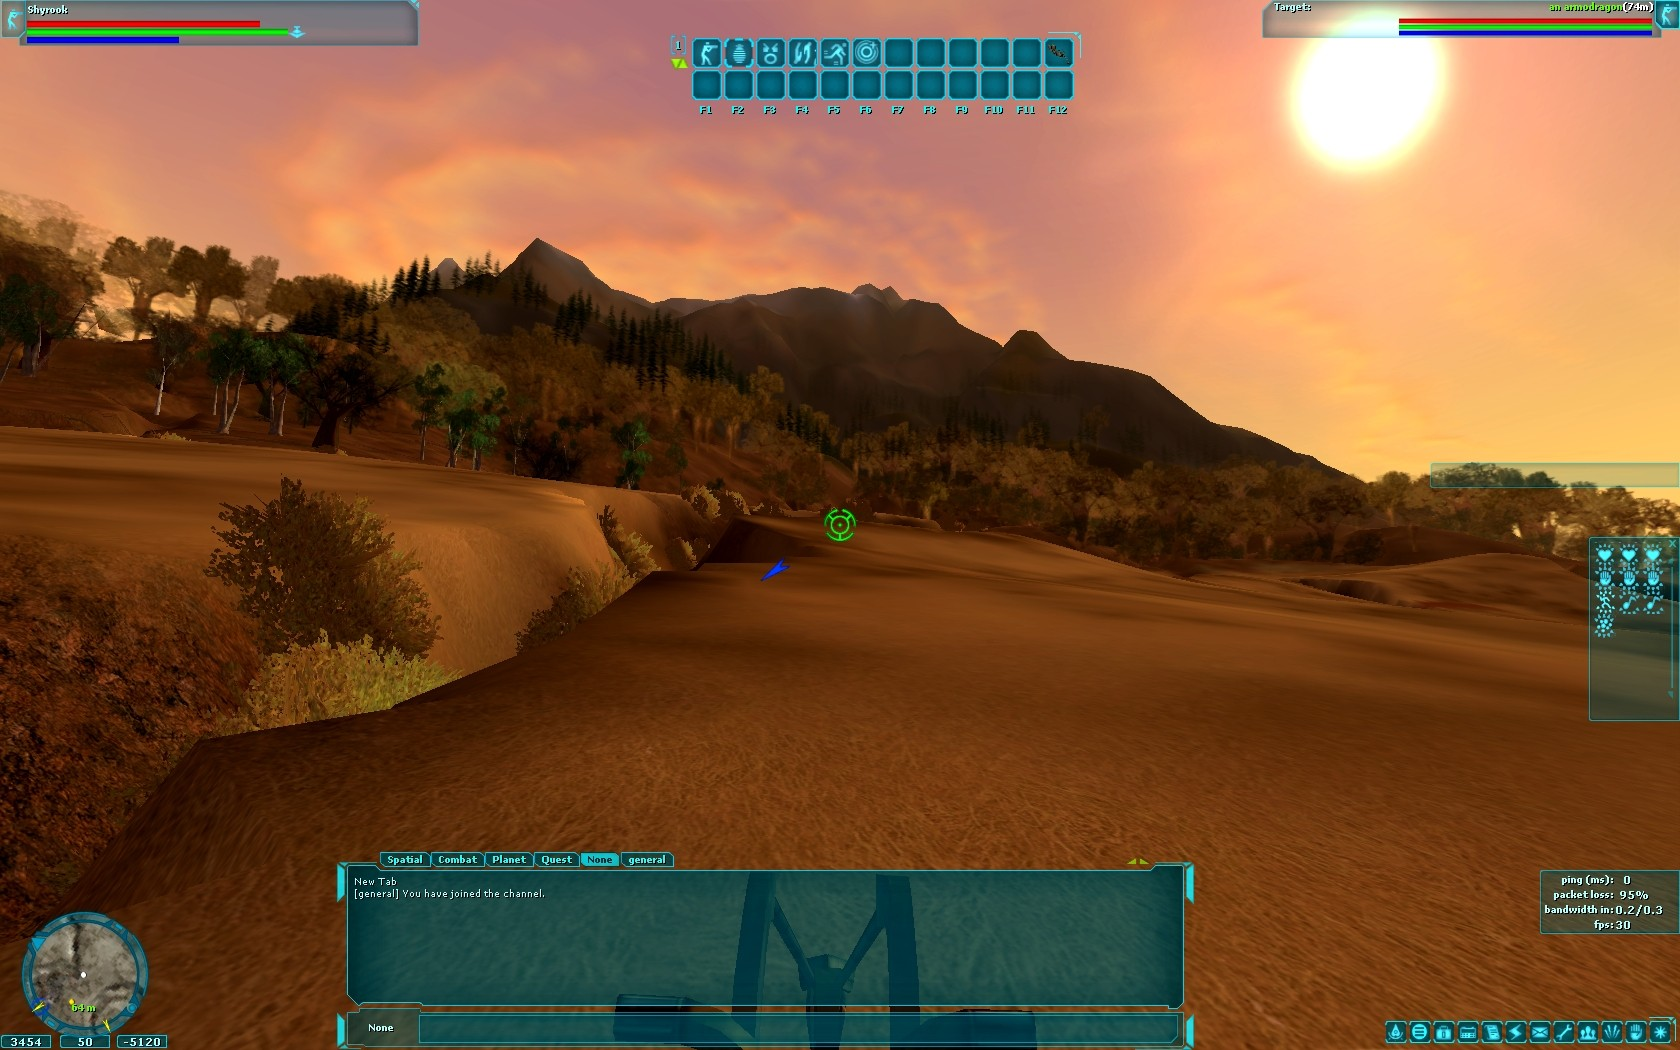 Star Wars Galaxies - Corelian Mountainside